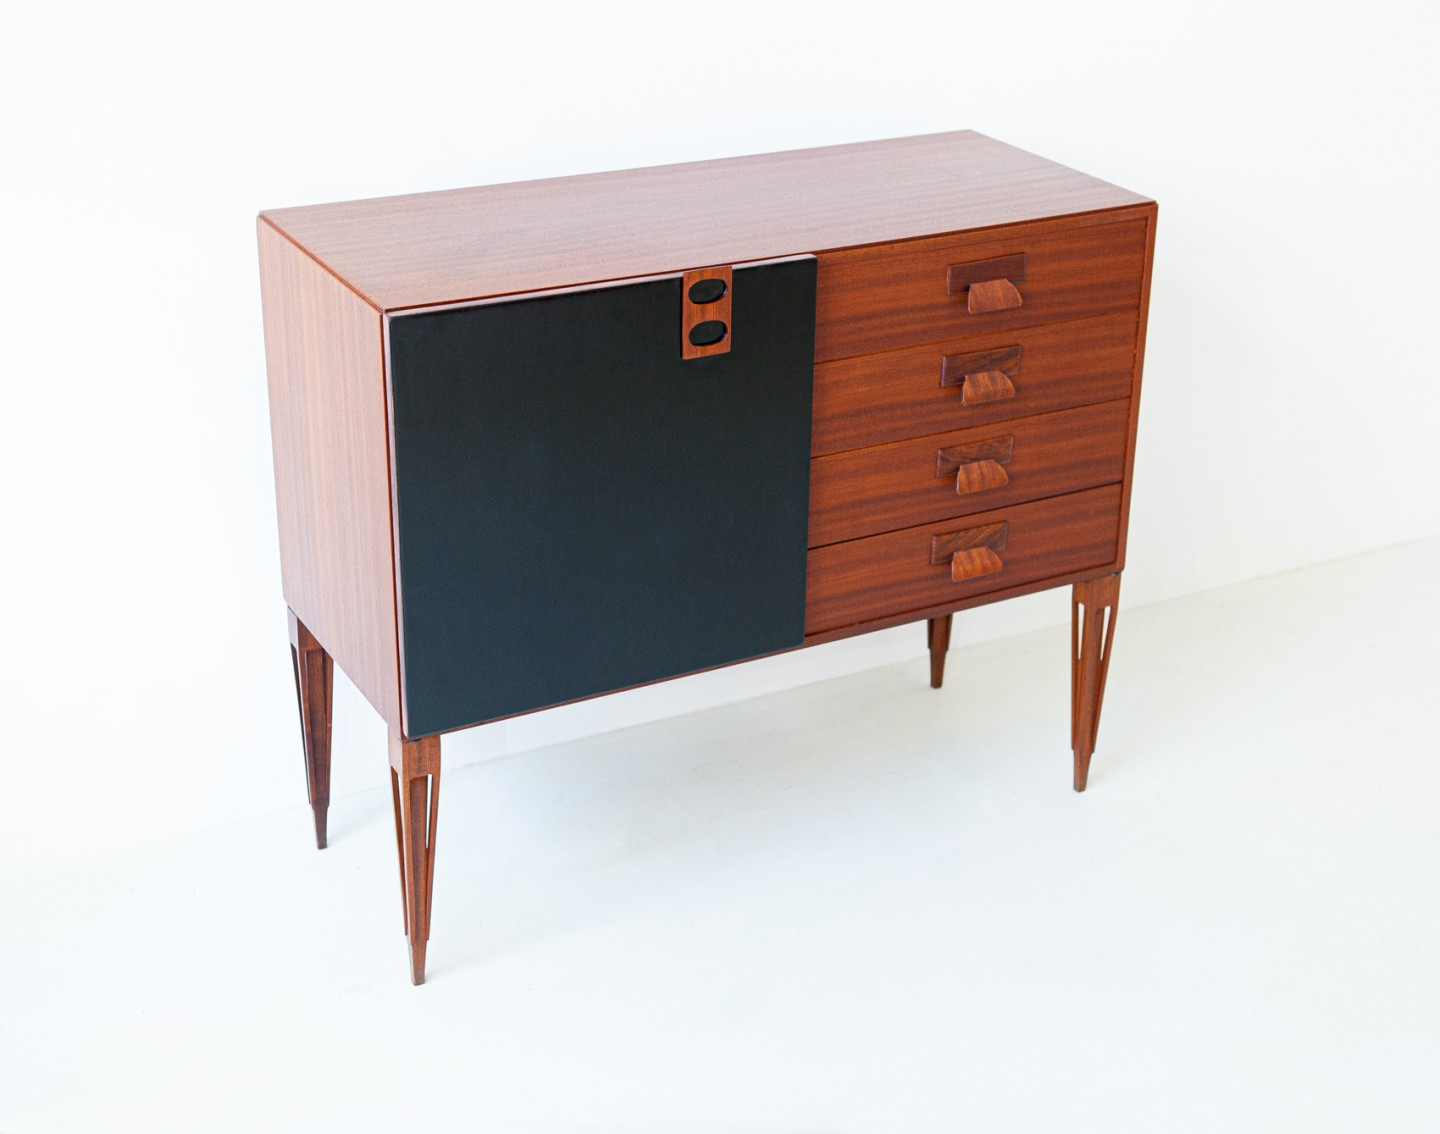 1950s Italian mahogany sideboard with drawers by Fratelli Proserpio ST121 – not available